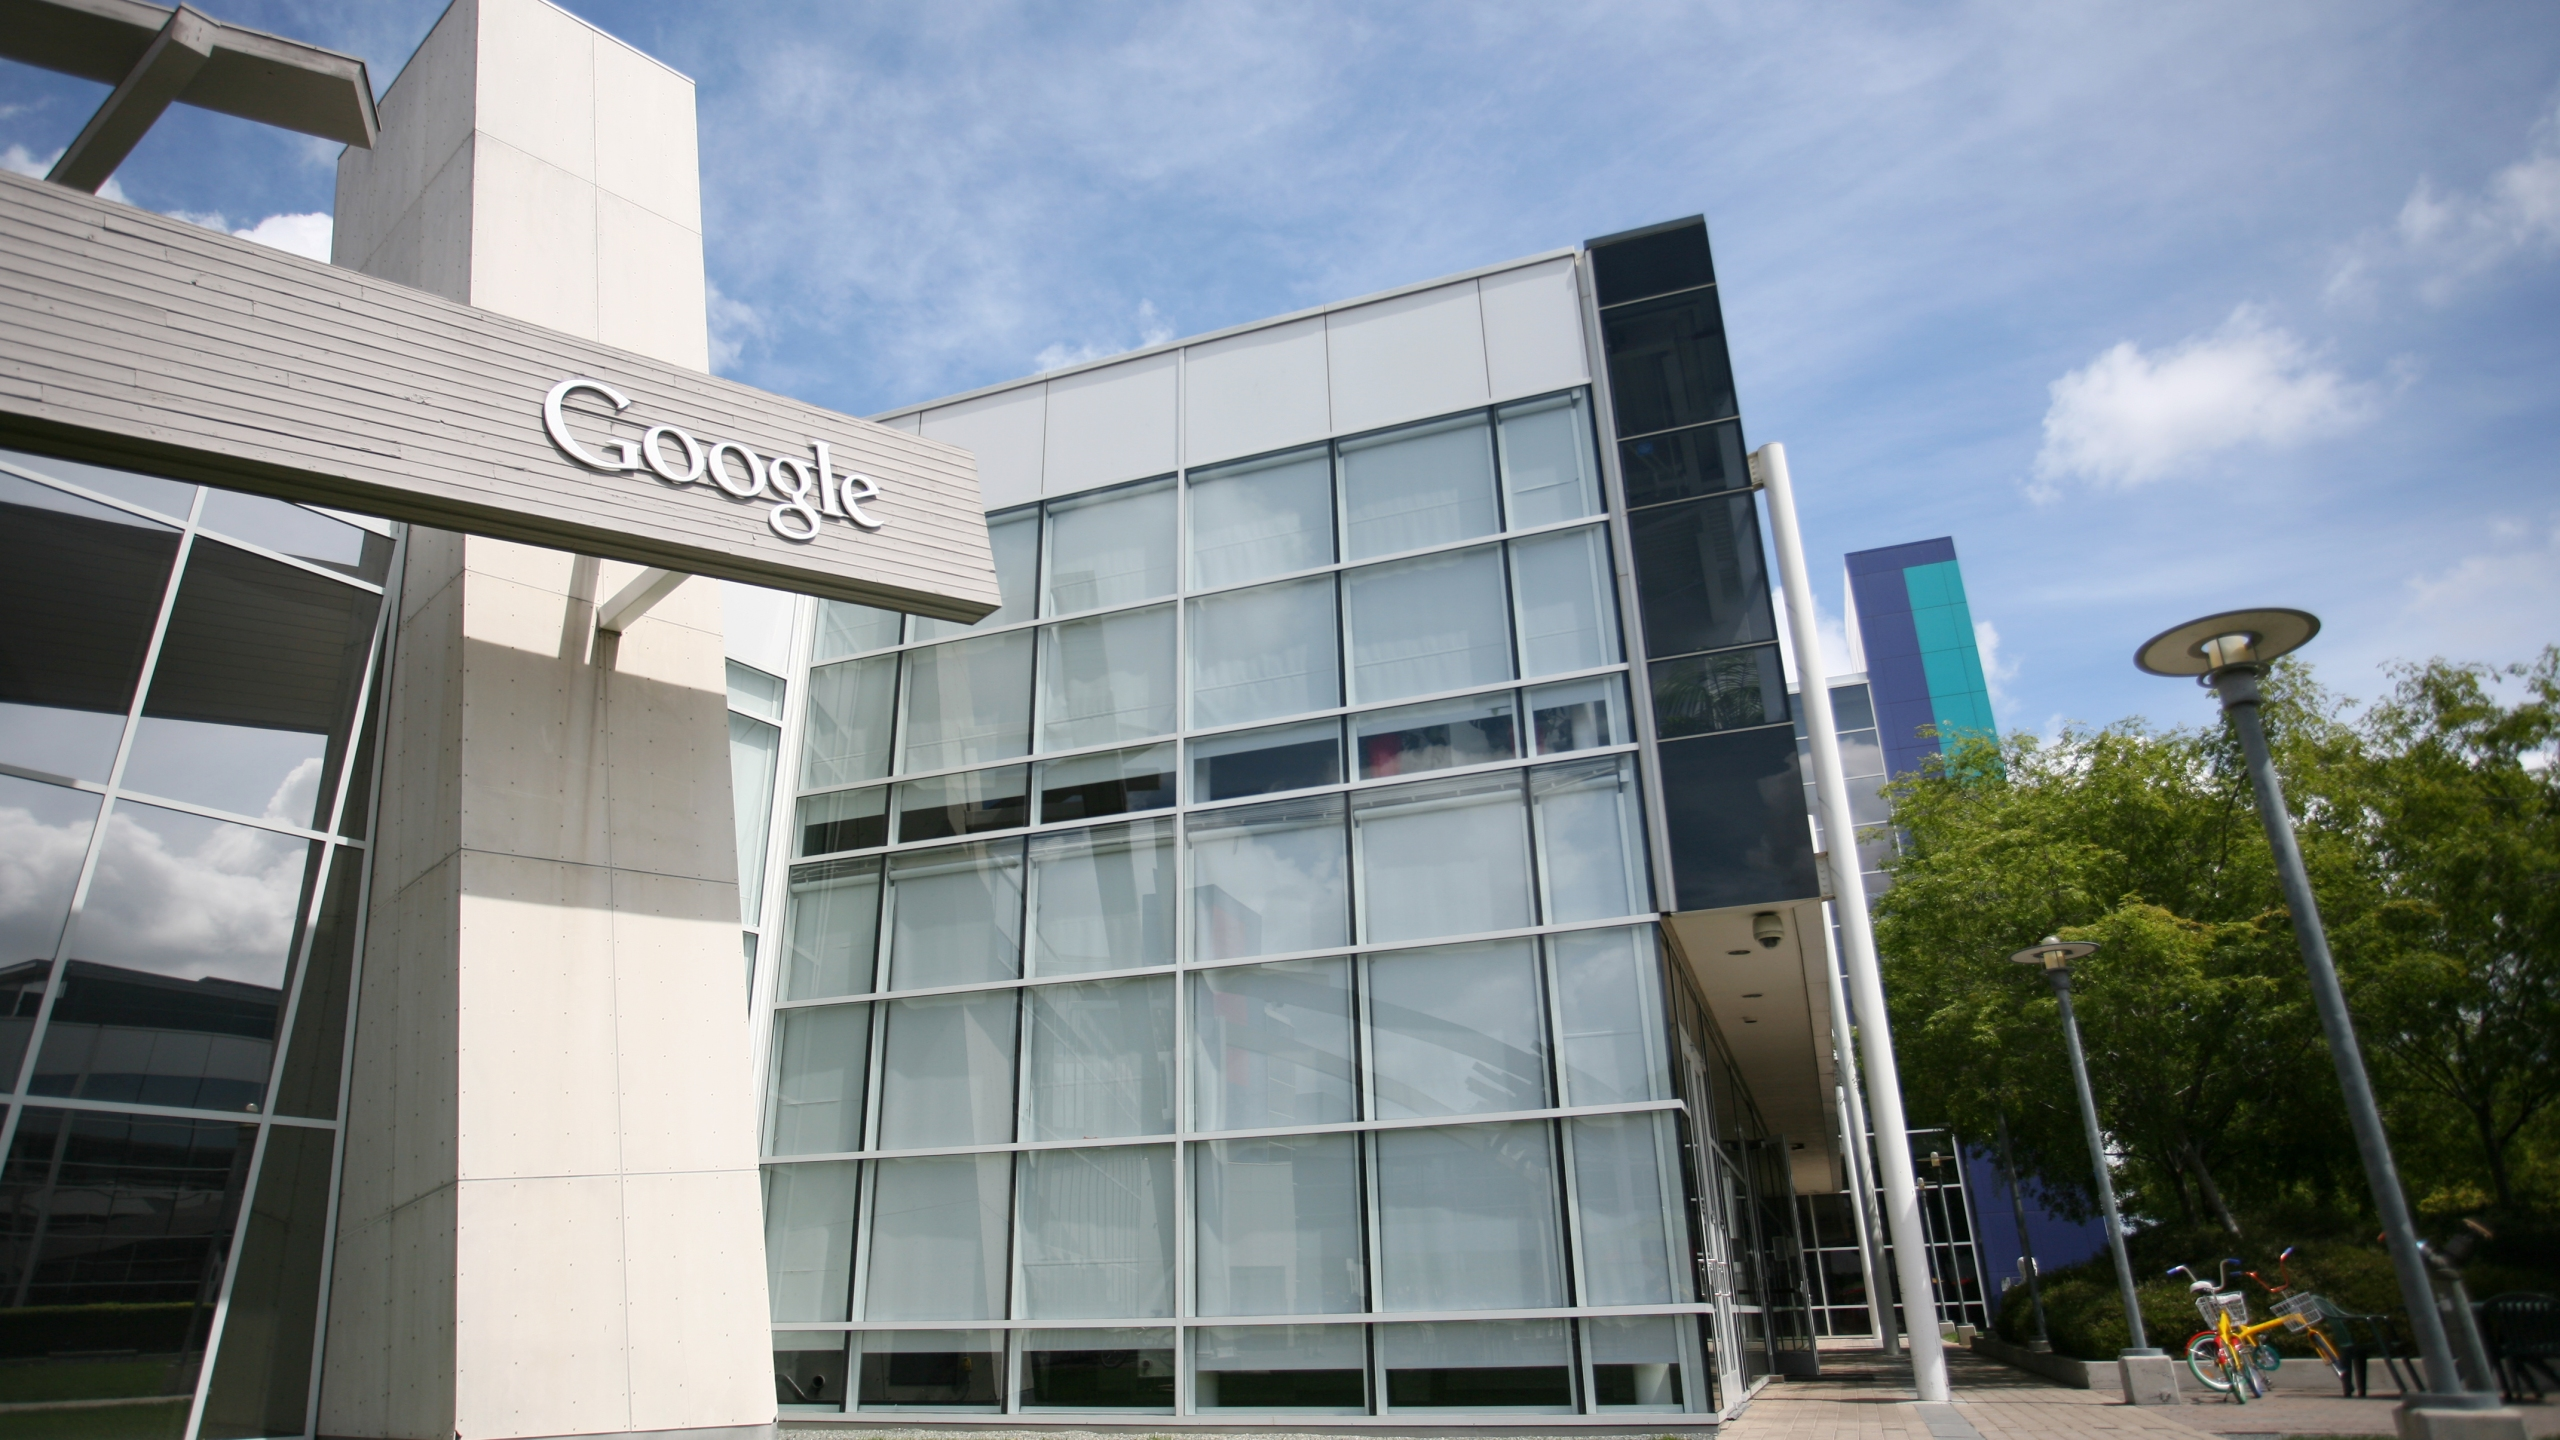 The Google logo is displayed at the Google headquarters in Mountain View, California on April 7, 2011. (Credit: KIMIHIRO HOSHINO/AFP via Getty Images)